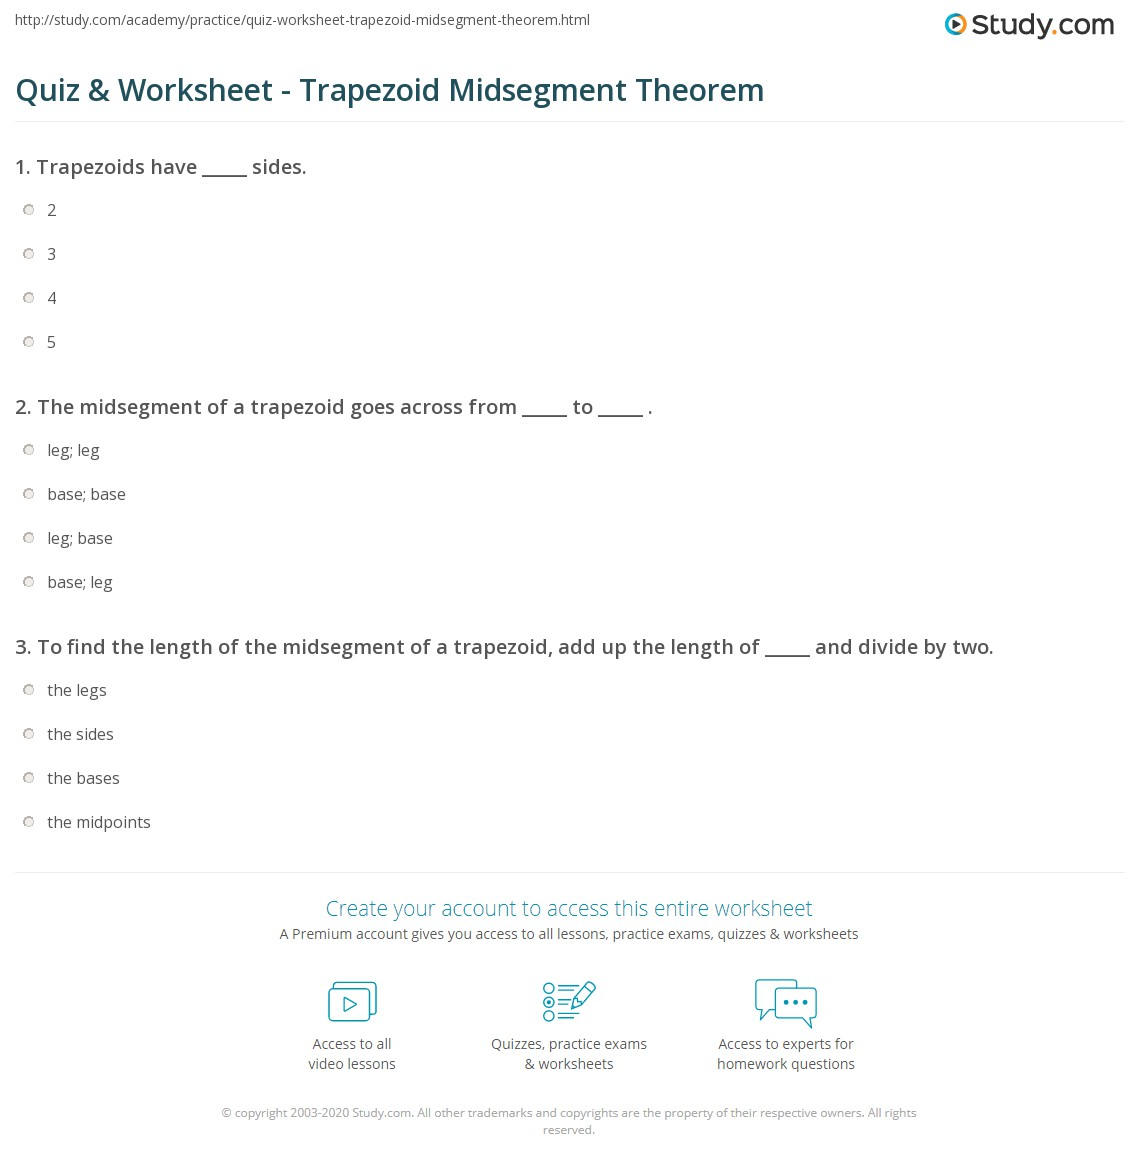 Print Using The Trapezoid Midsegment Theorem Worksheet Quiz & Worksheet  Trapezoid Midsegment Theorem Study